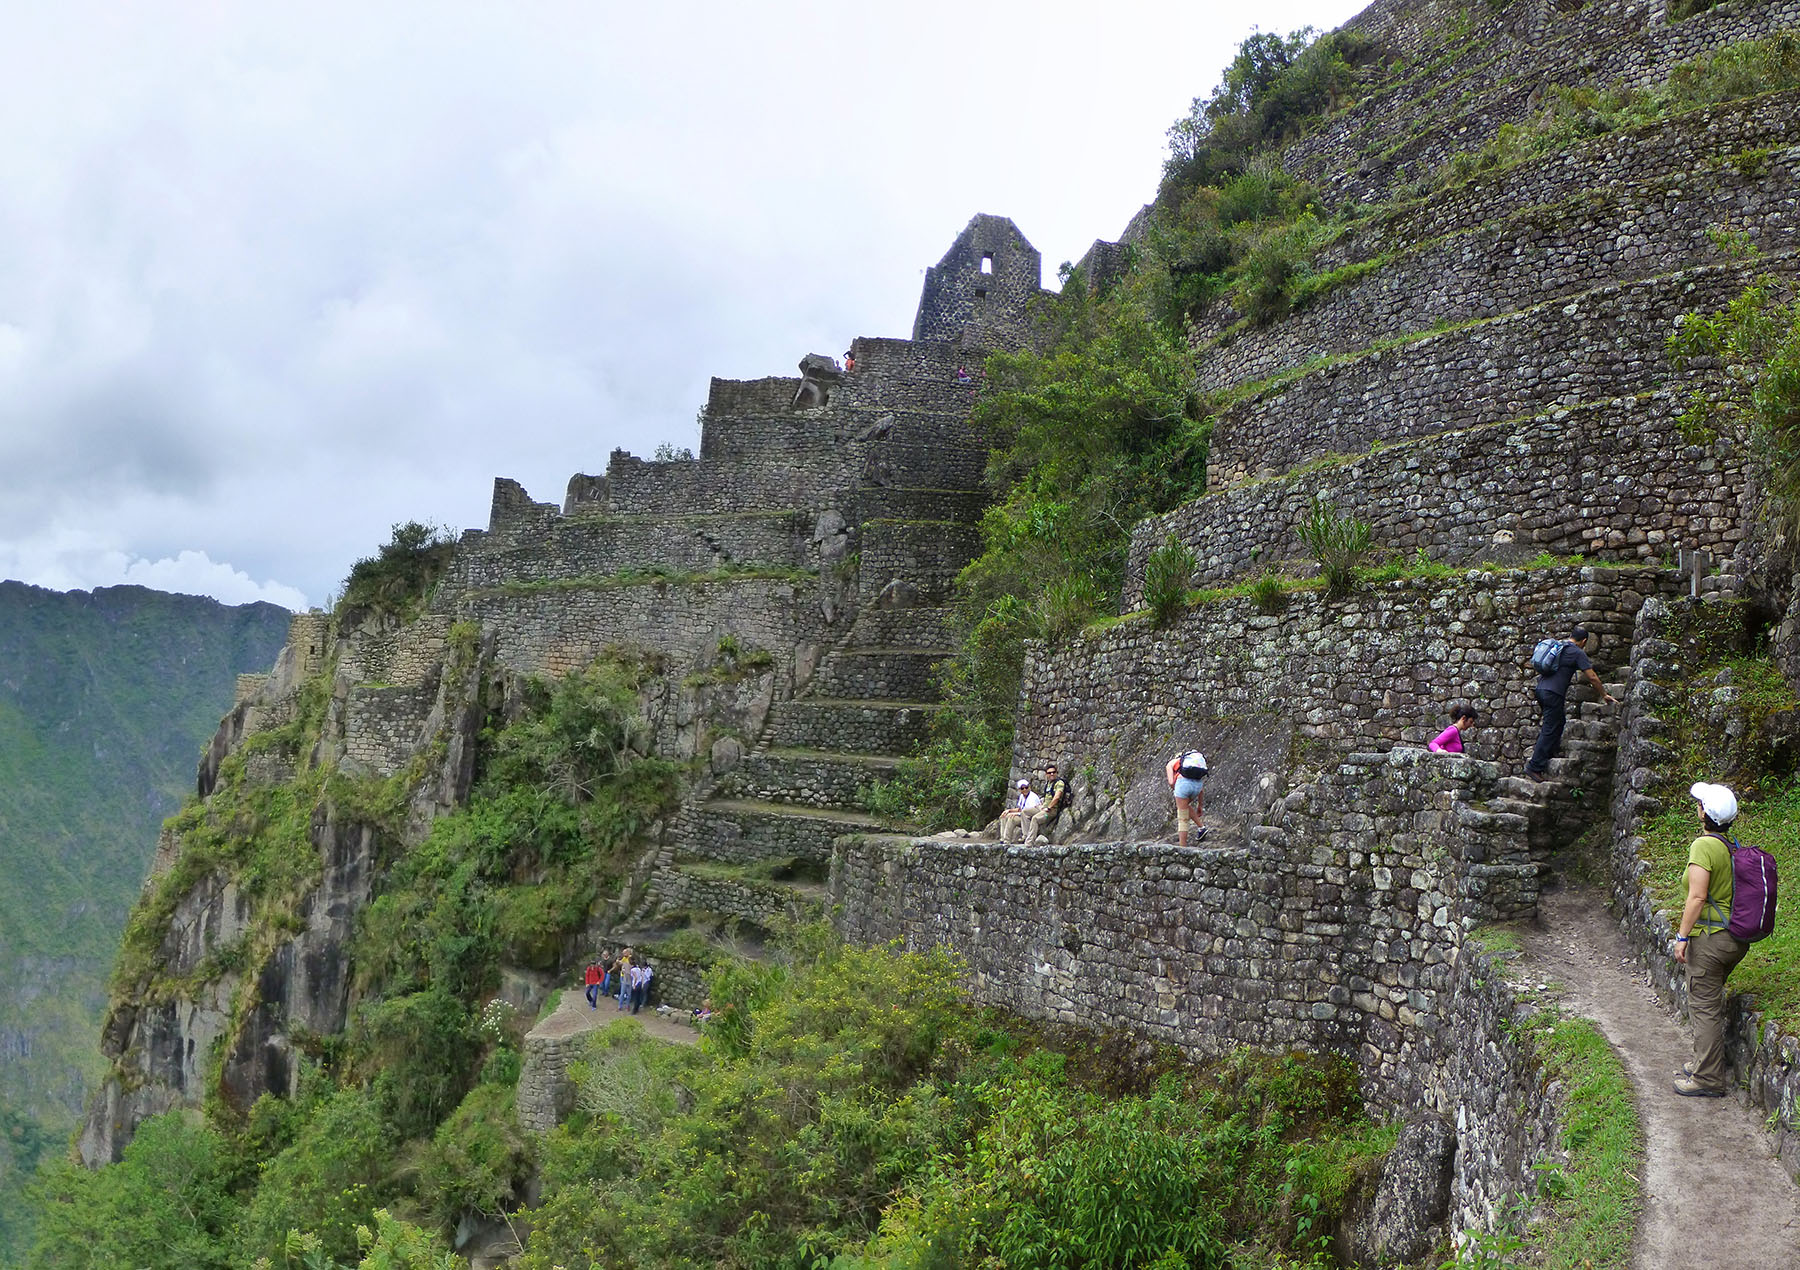 The ruins atop Huayna Picchu